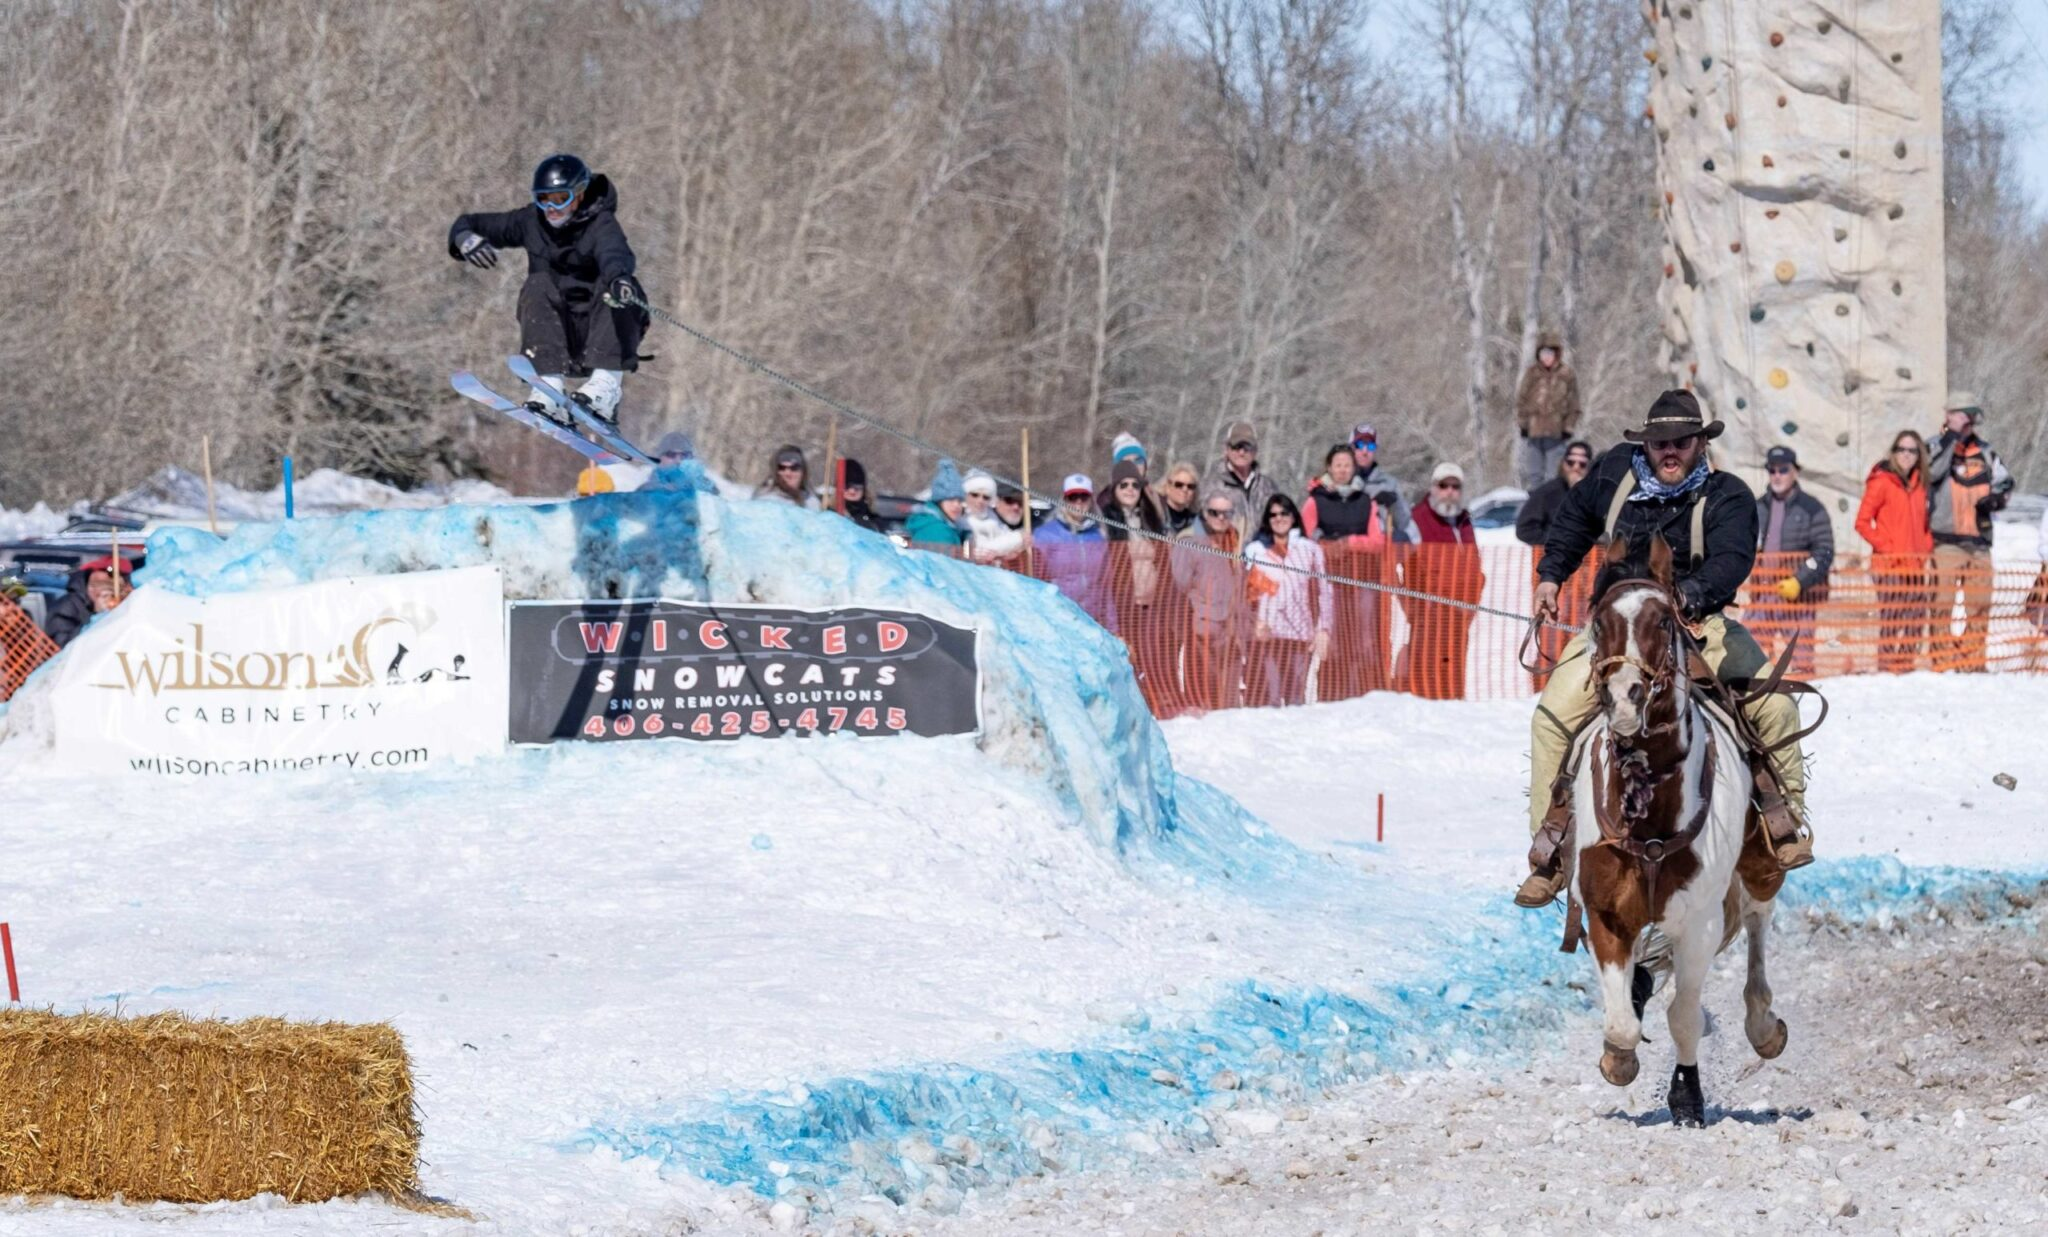 Skier being pulled by a horse while they go off a jump/